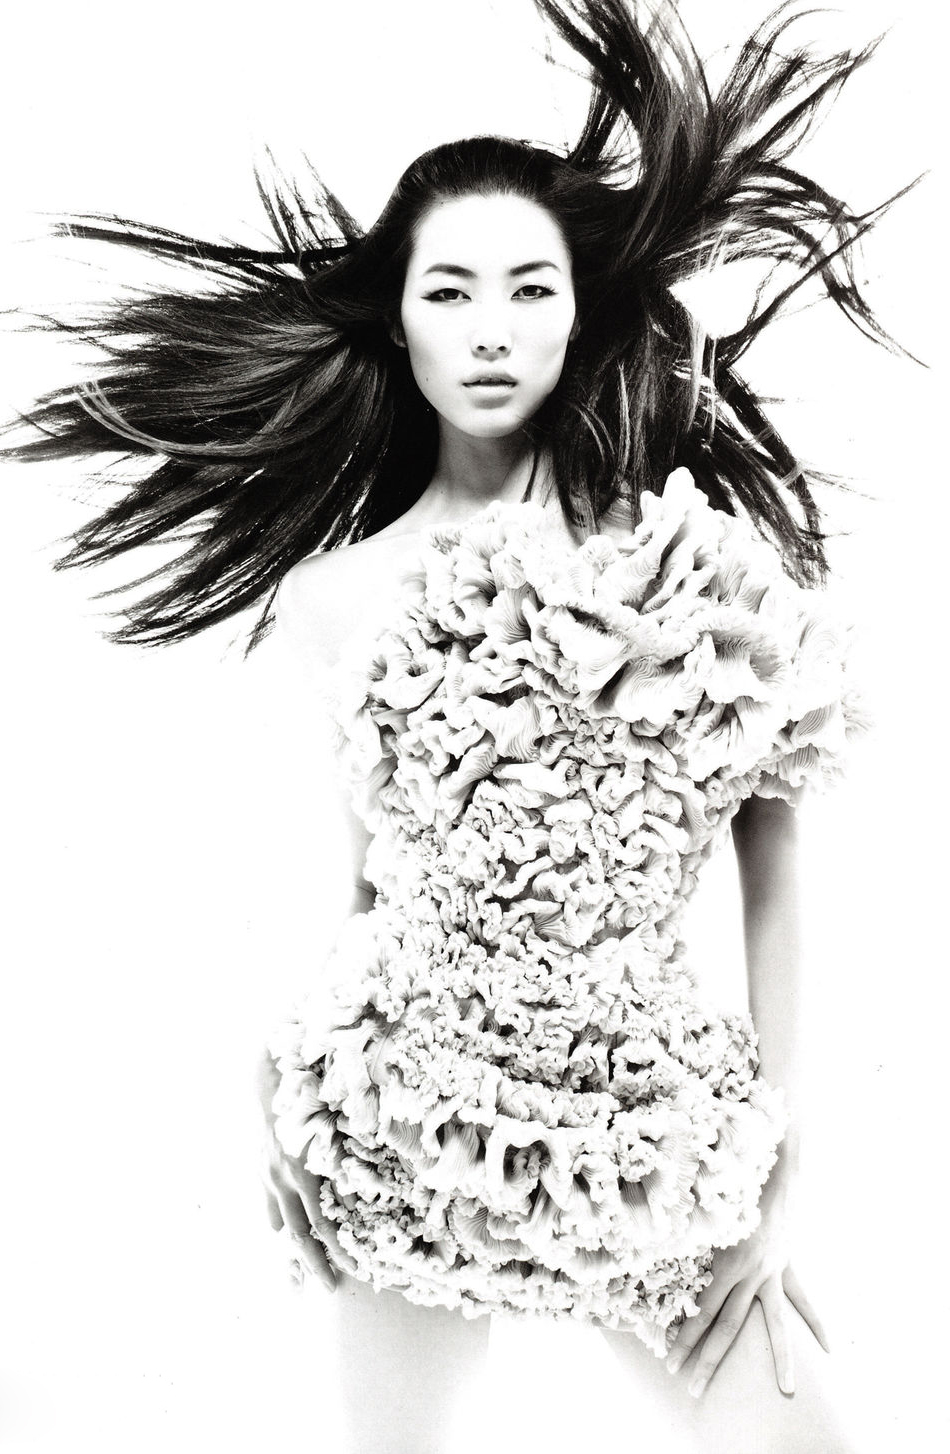 Numero #1 China September 2010 (photography: Tiziano Magni; styling: Joseph Carle)